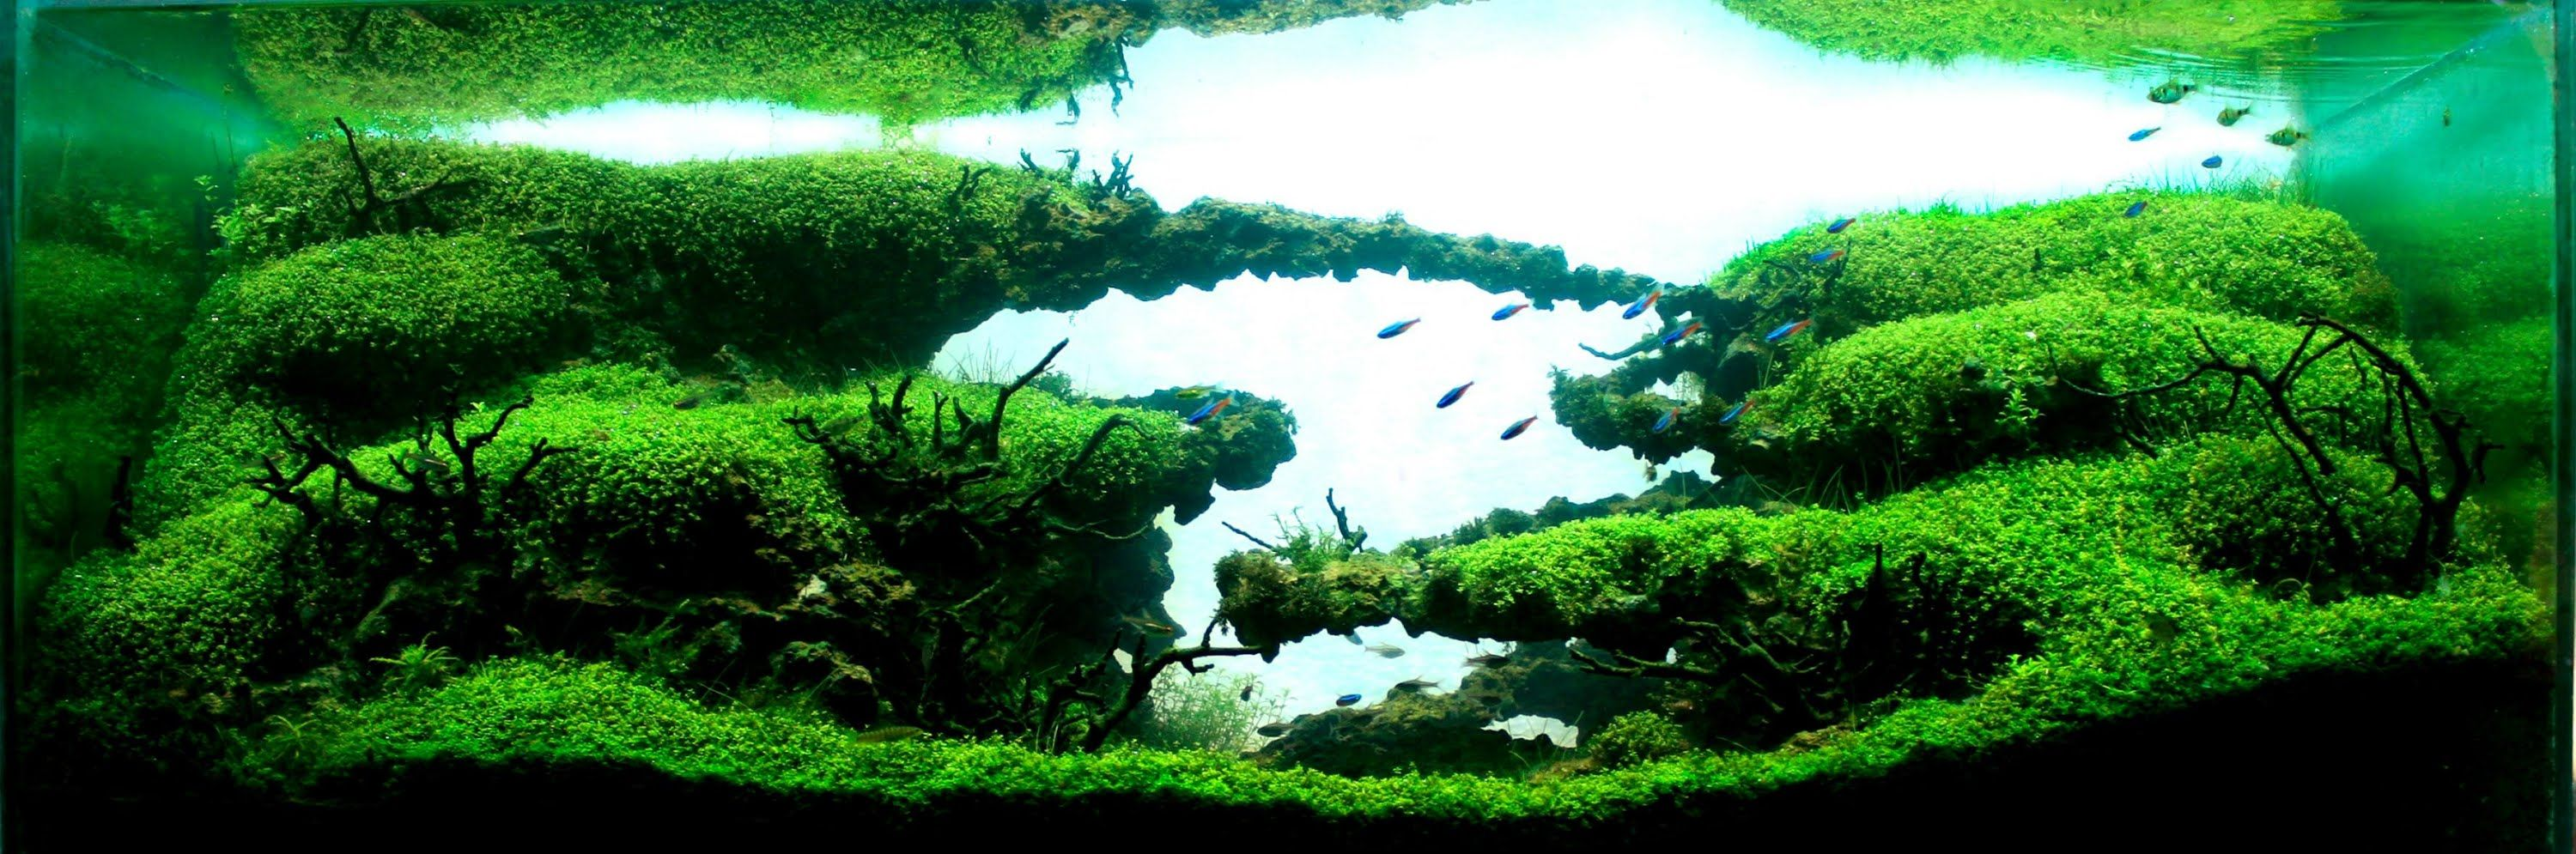 Lovely Panoramic The Construction Of This Aquascapes Builds Up Towards The  Back And The Planting Is Perfect For Scale Making It Look Like It Could Go  On ...